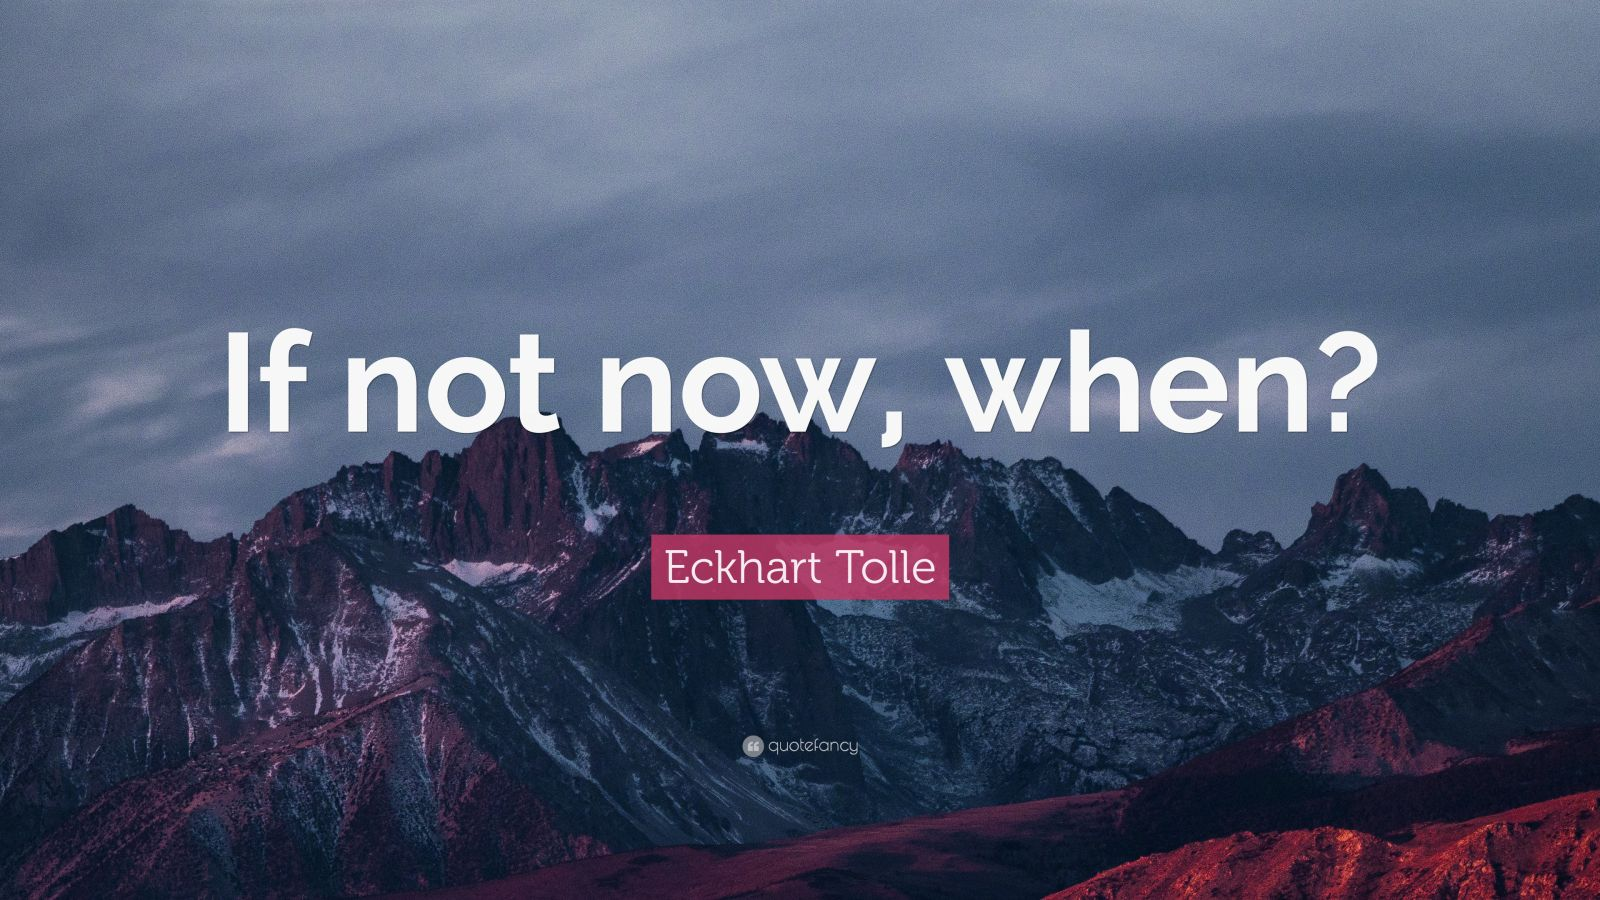 Nietzsche Quotes Wallpaper Eckhart Tolle Quote If Not Now When 23 Wallpapers